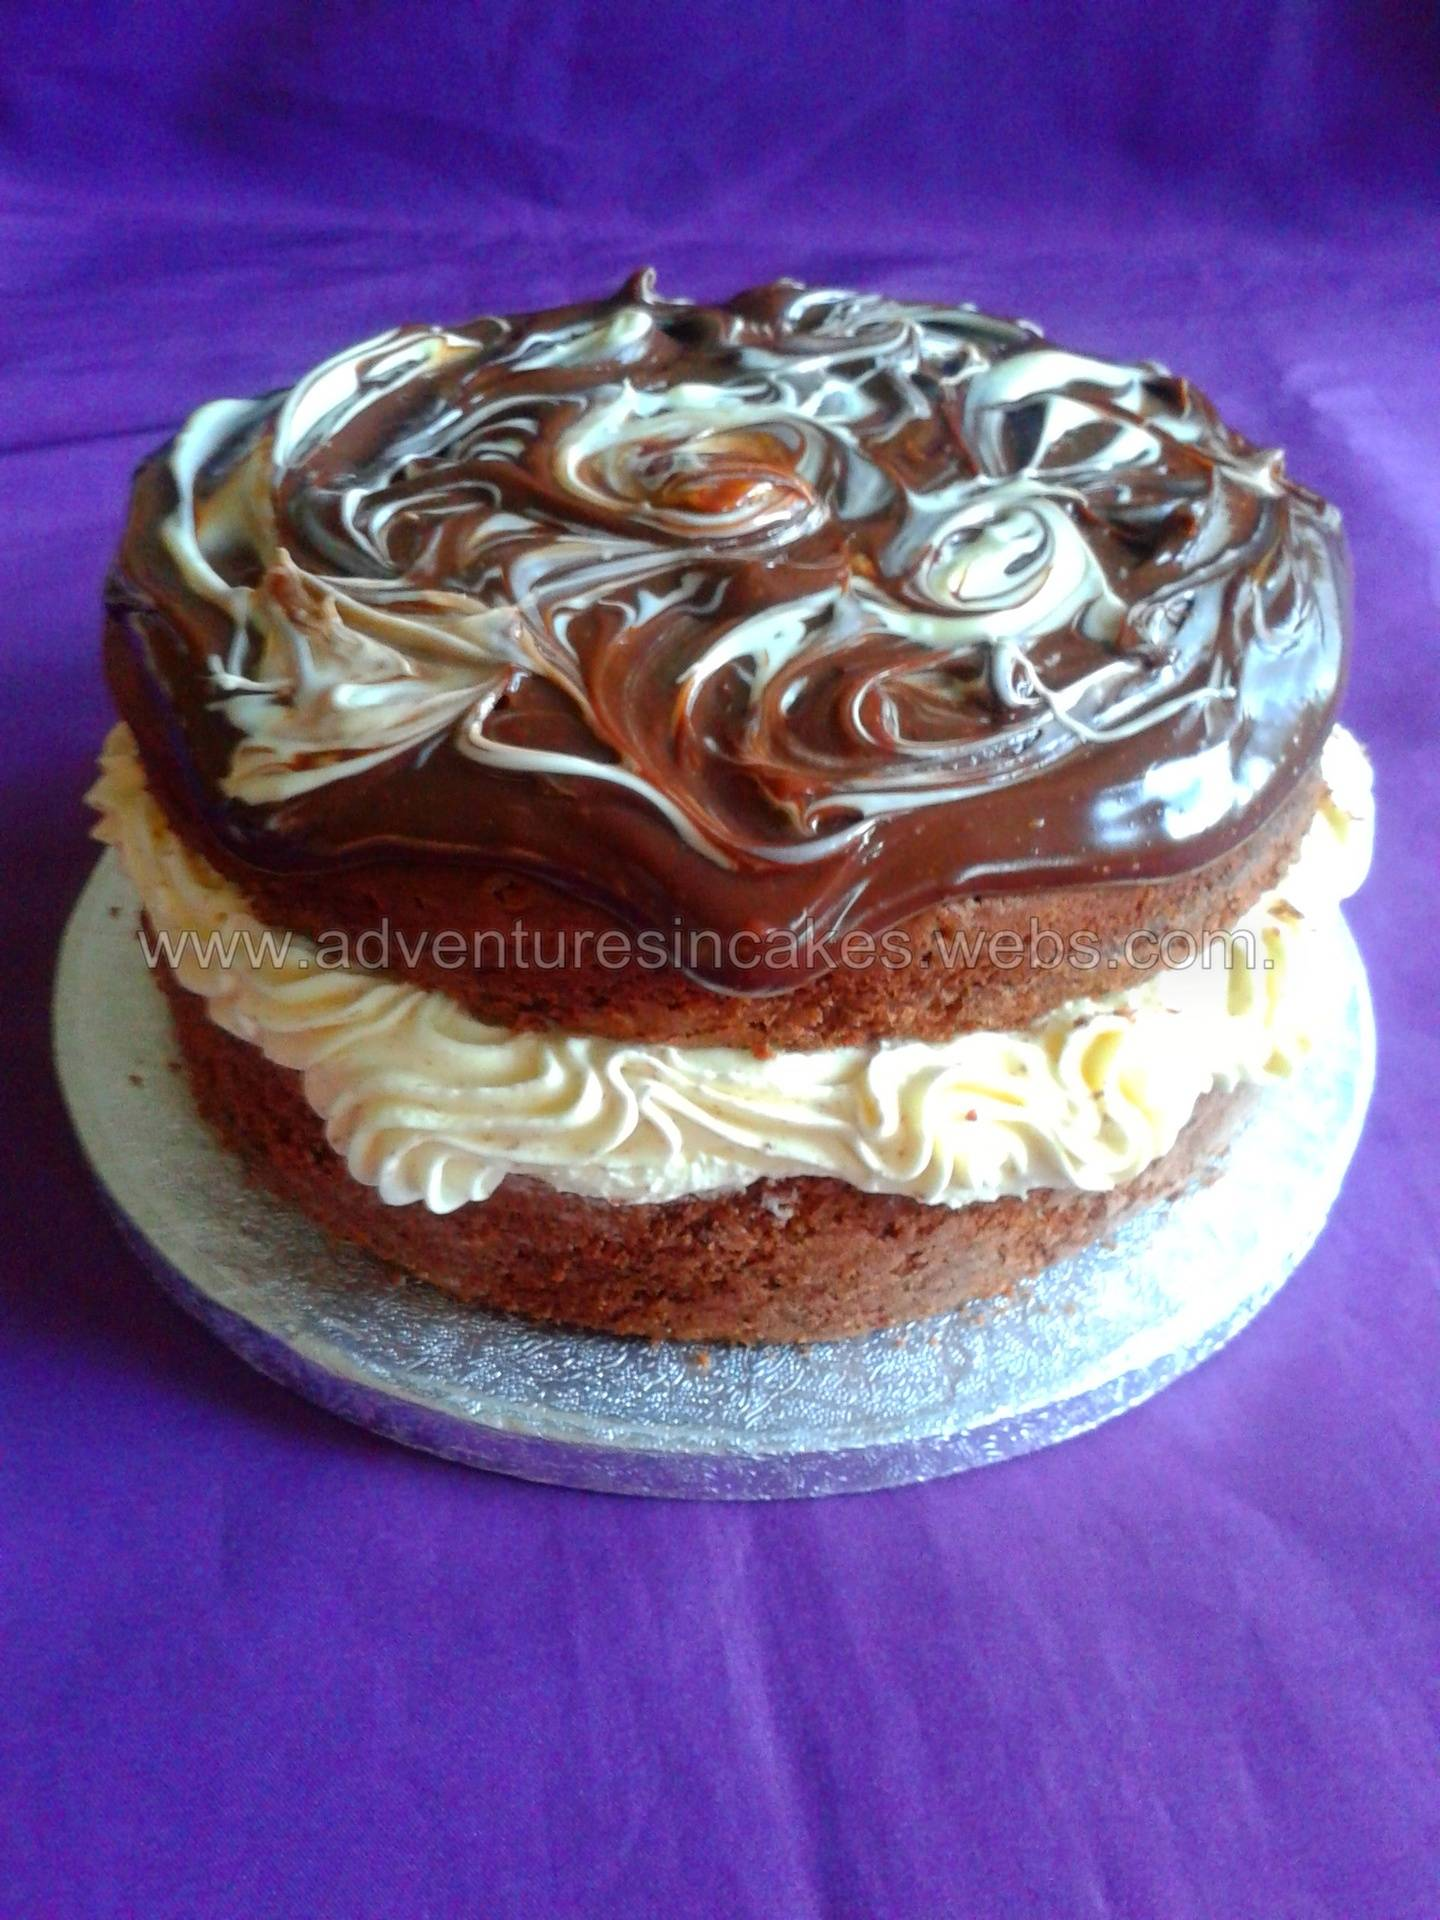 Chocolate with white chocolate buttercream filling